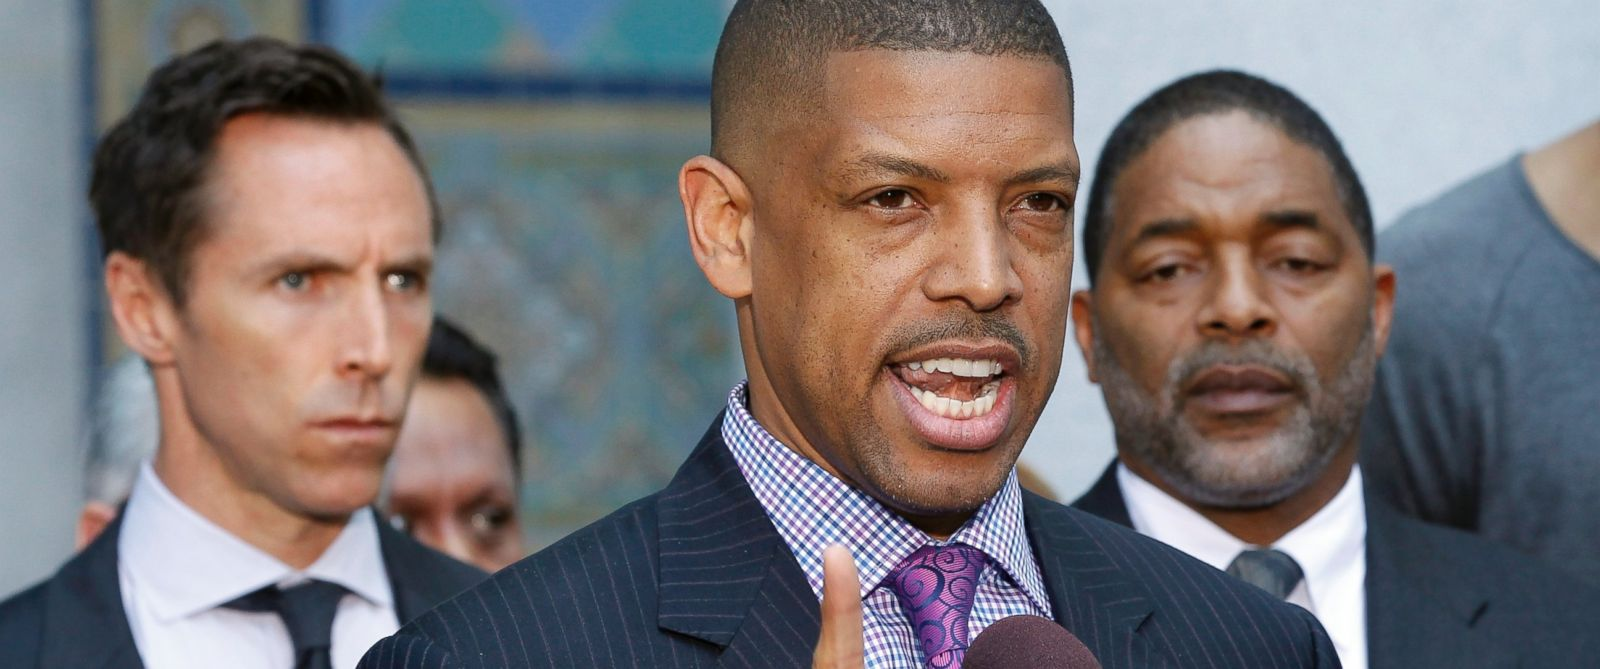 PHOTO: Sacramento, Calif., Mayor Kevin Johnson, former NBA basketball player and now an NBA Players Association advisor, speaks during a news conference outside City Hall in Los Angeles, April 29, 2014.